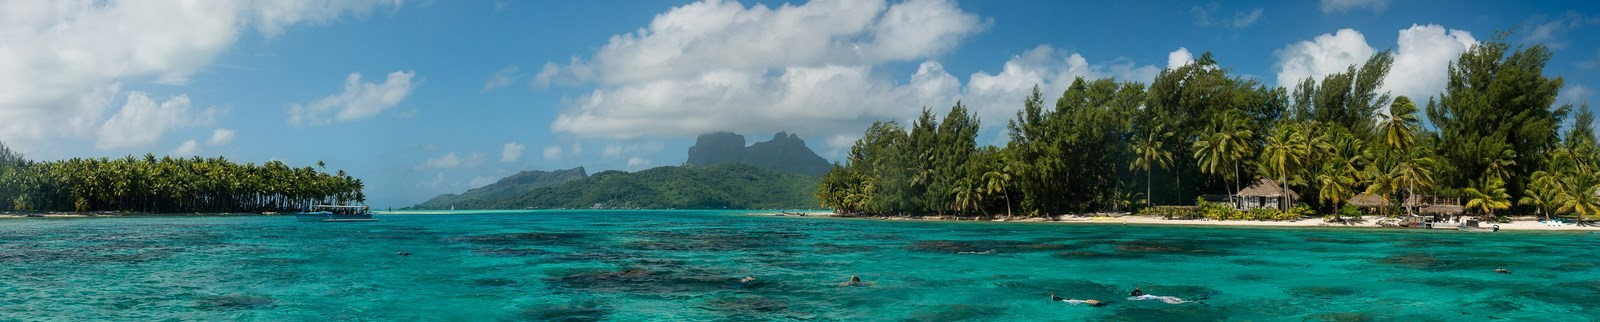 14 Places to visit in Bora Bora for the Travelling Architect - Sheet4